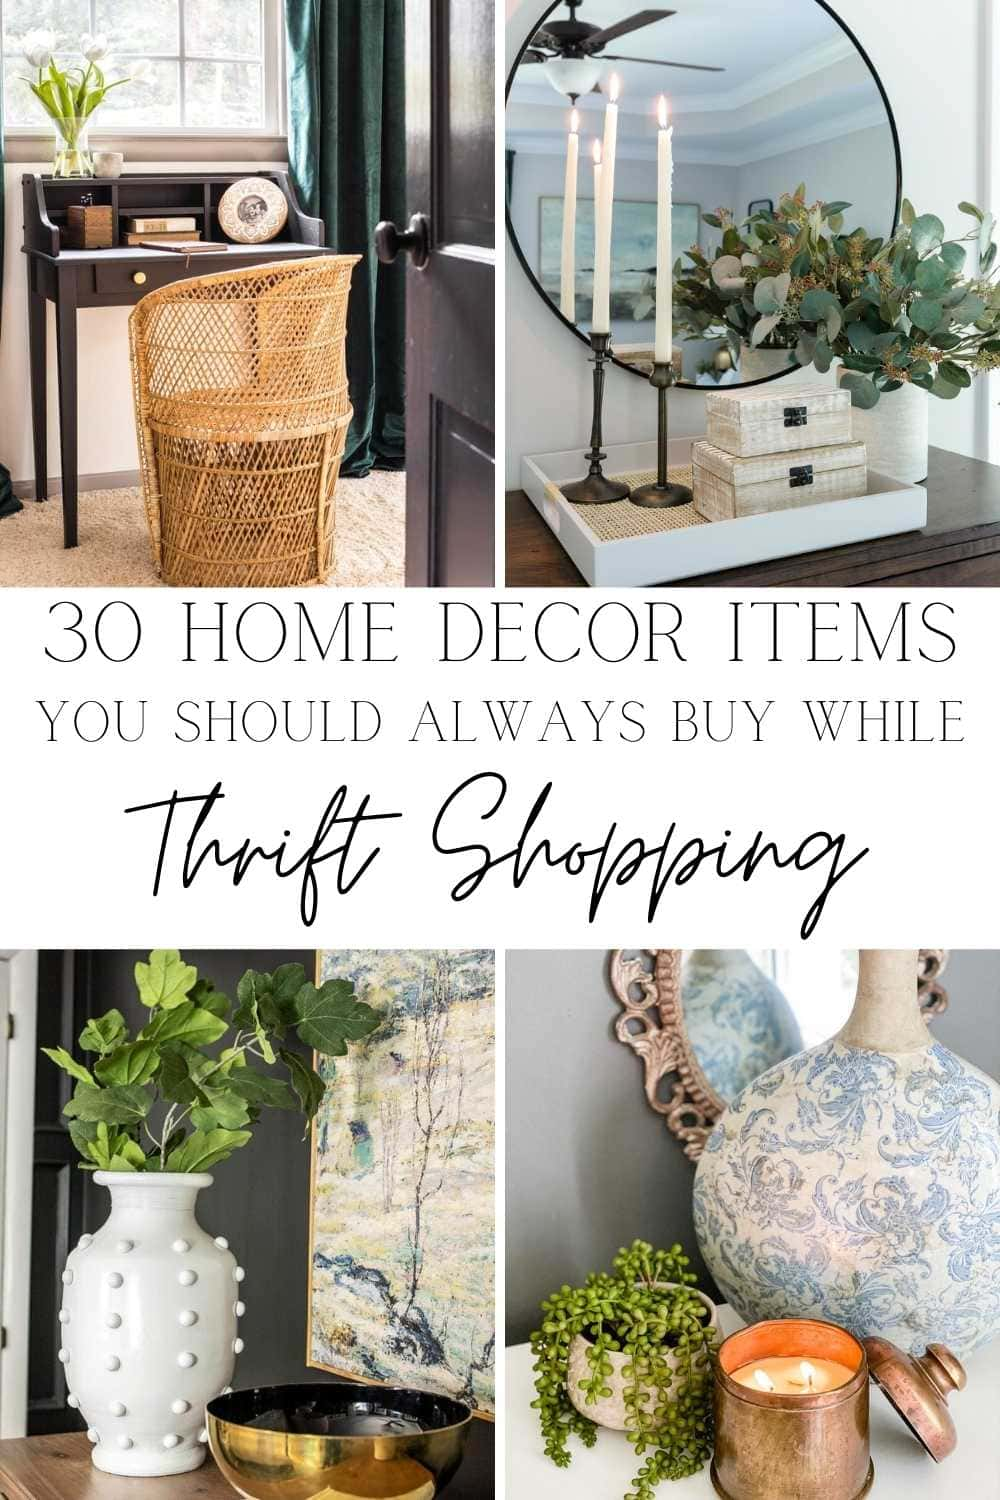 A round-up of 30 of the most common items to buy while thrift shopping that can be transformed into home decor using a few simple changes.